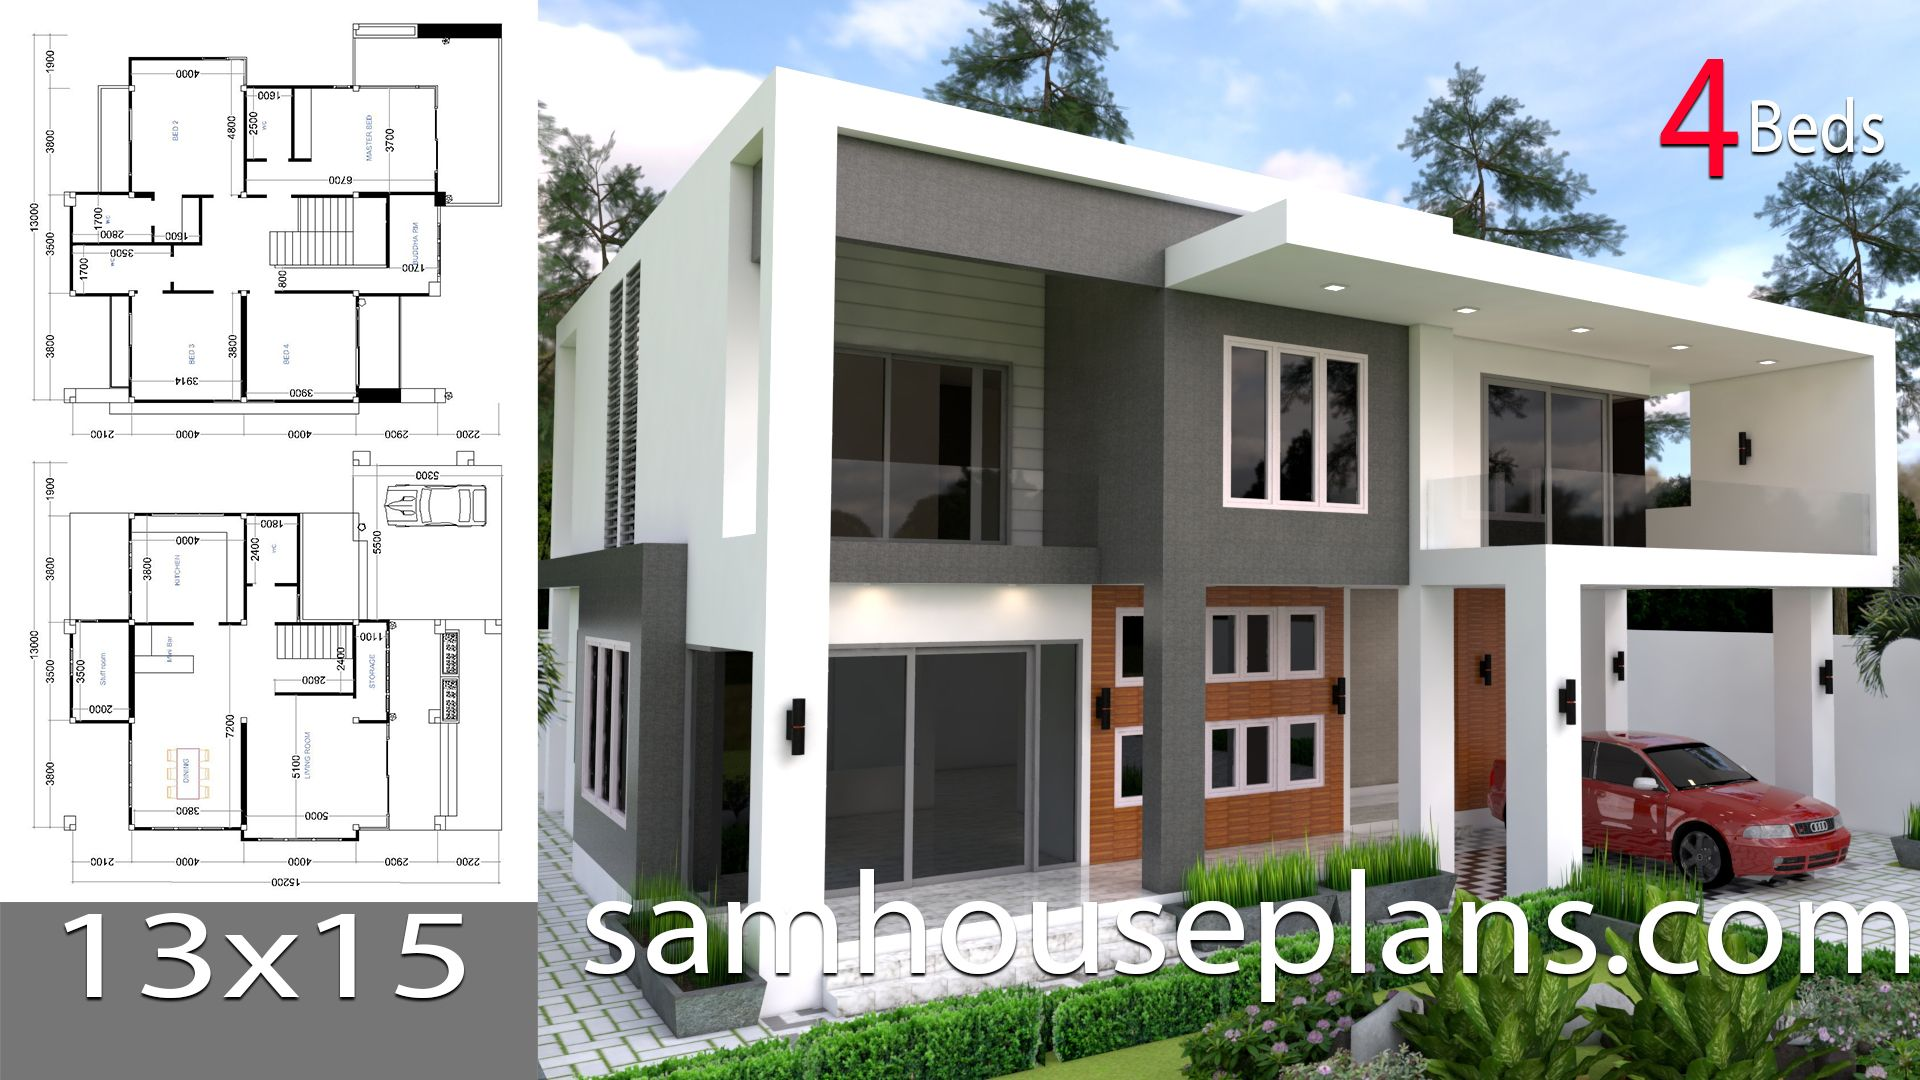 House Plans 13x15 With 4 Bedrooms House Plans Free Downloads 4 Bedroom House Plans House Plans Model House Plan